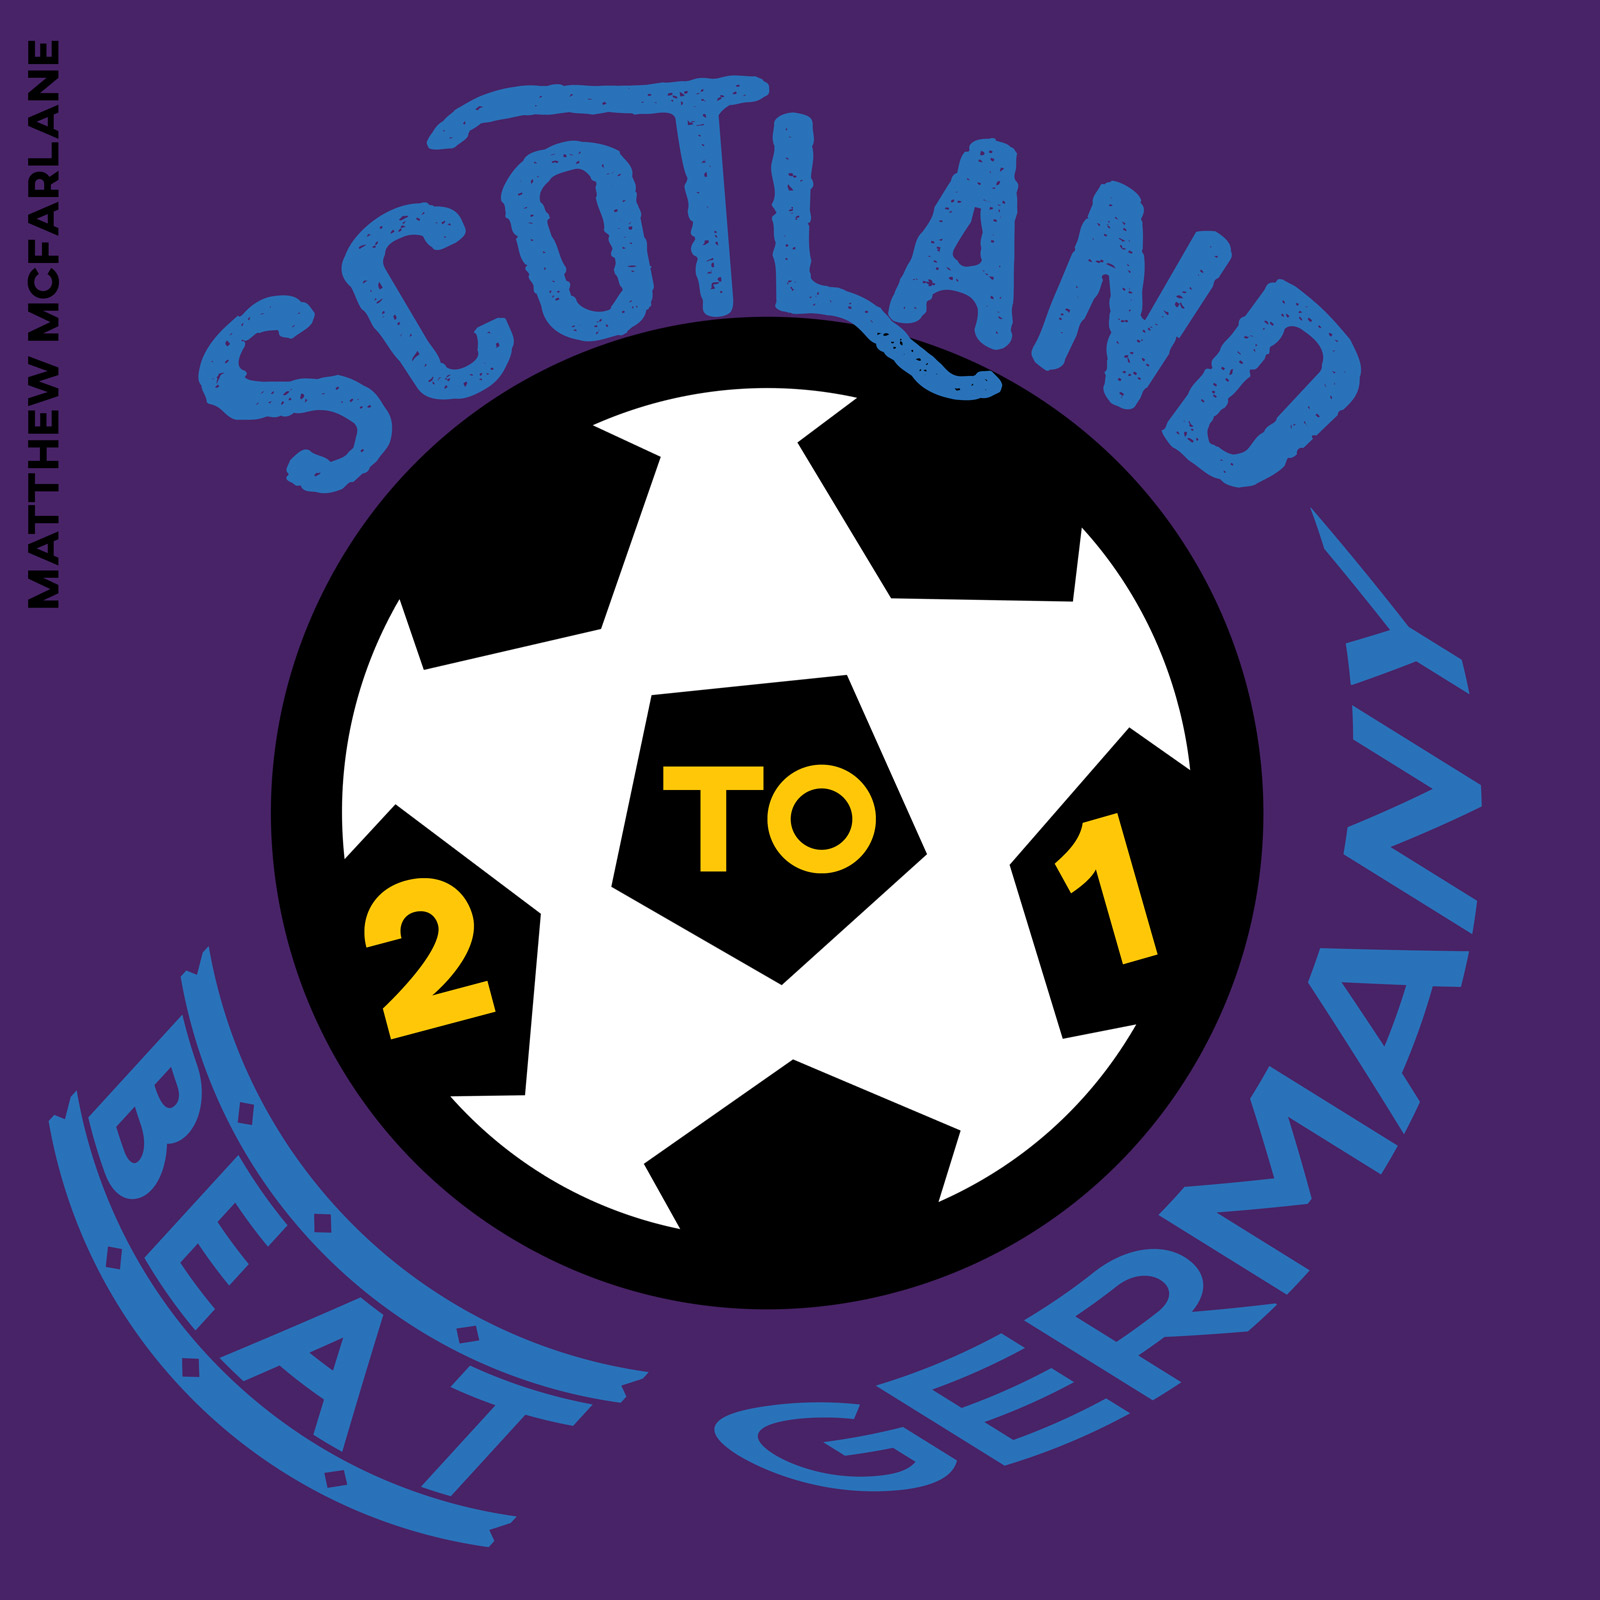 Scotland beat Germany 2 to 1.